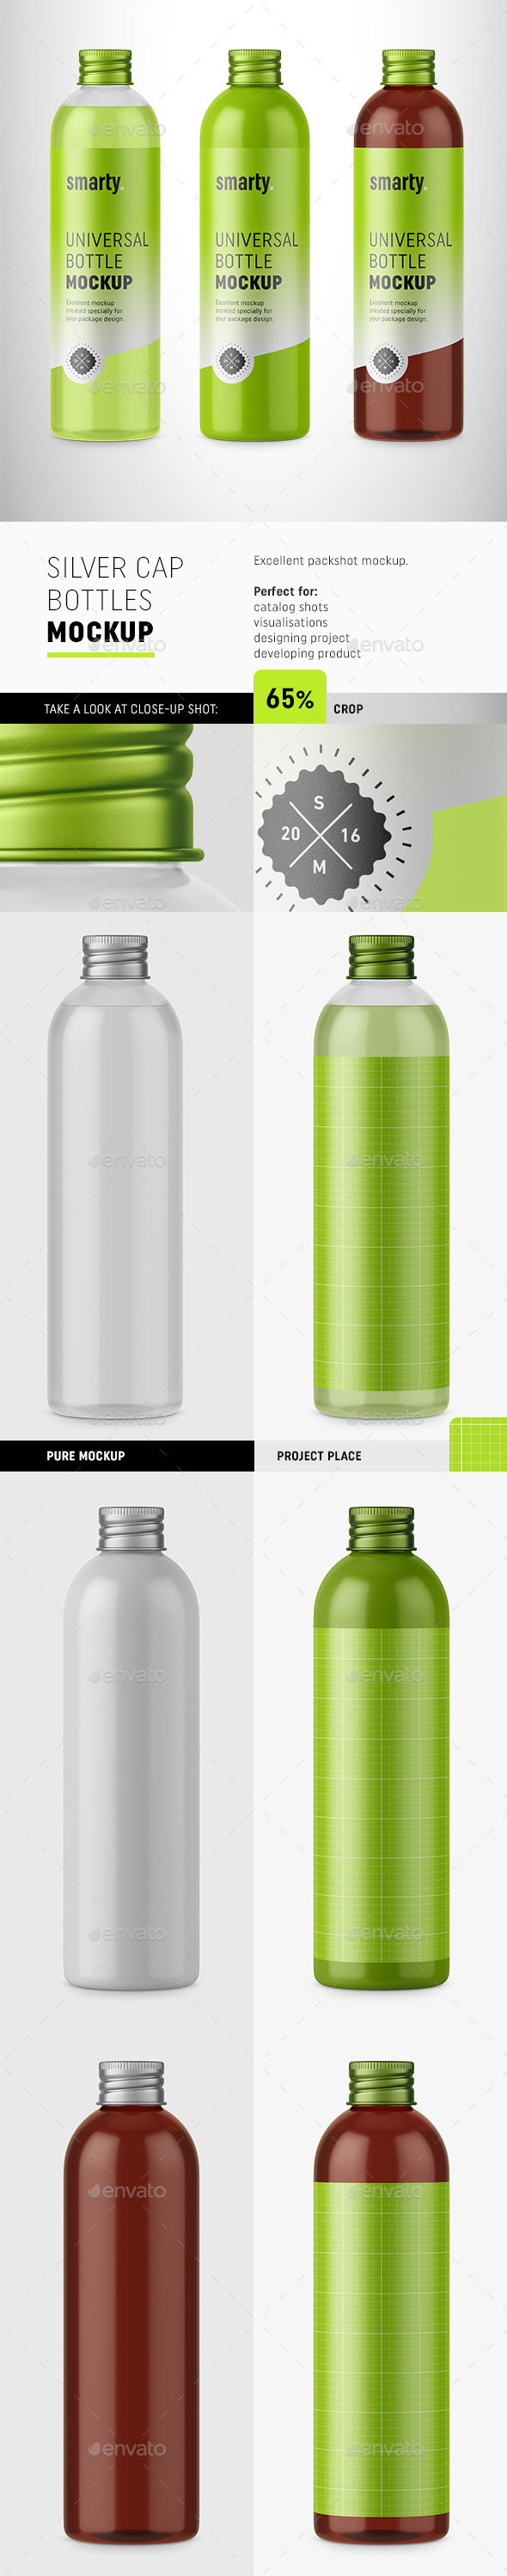 GraphicRiver Bottles with Silver Cap Mockup 20234390